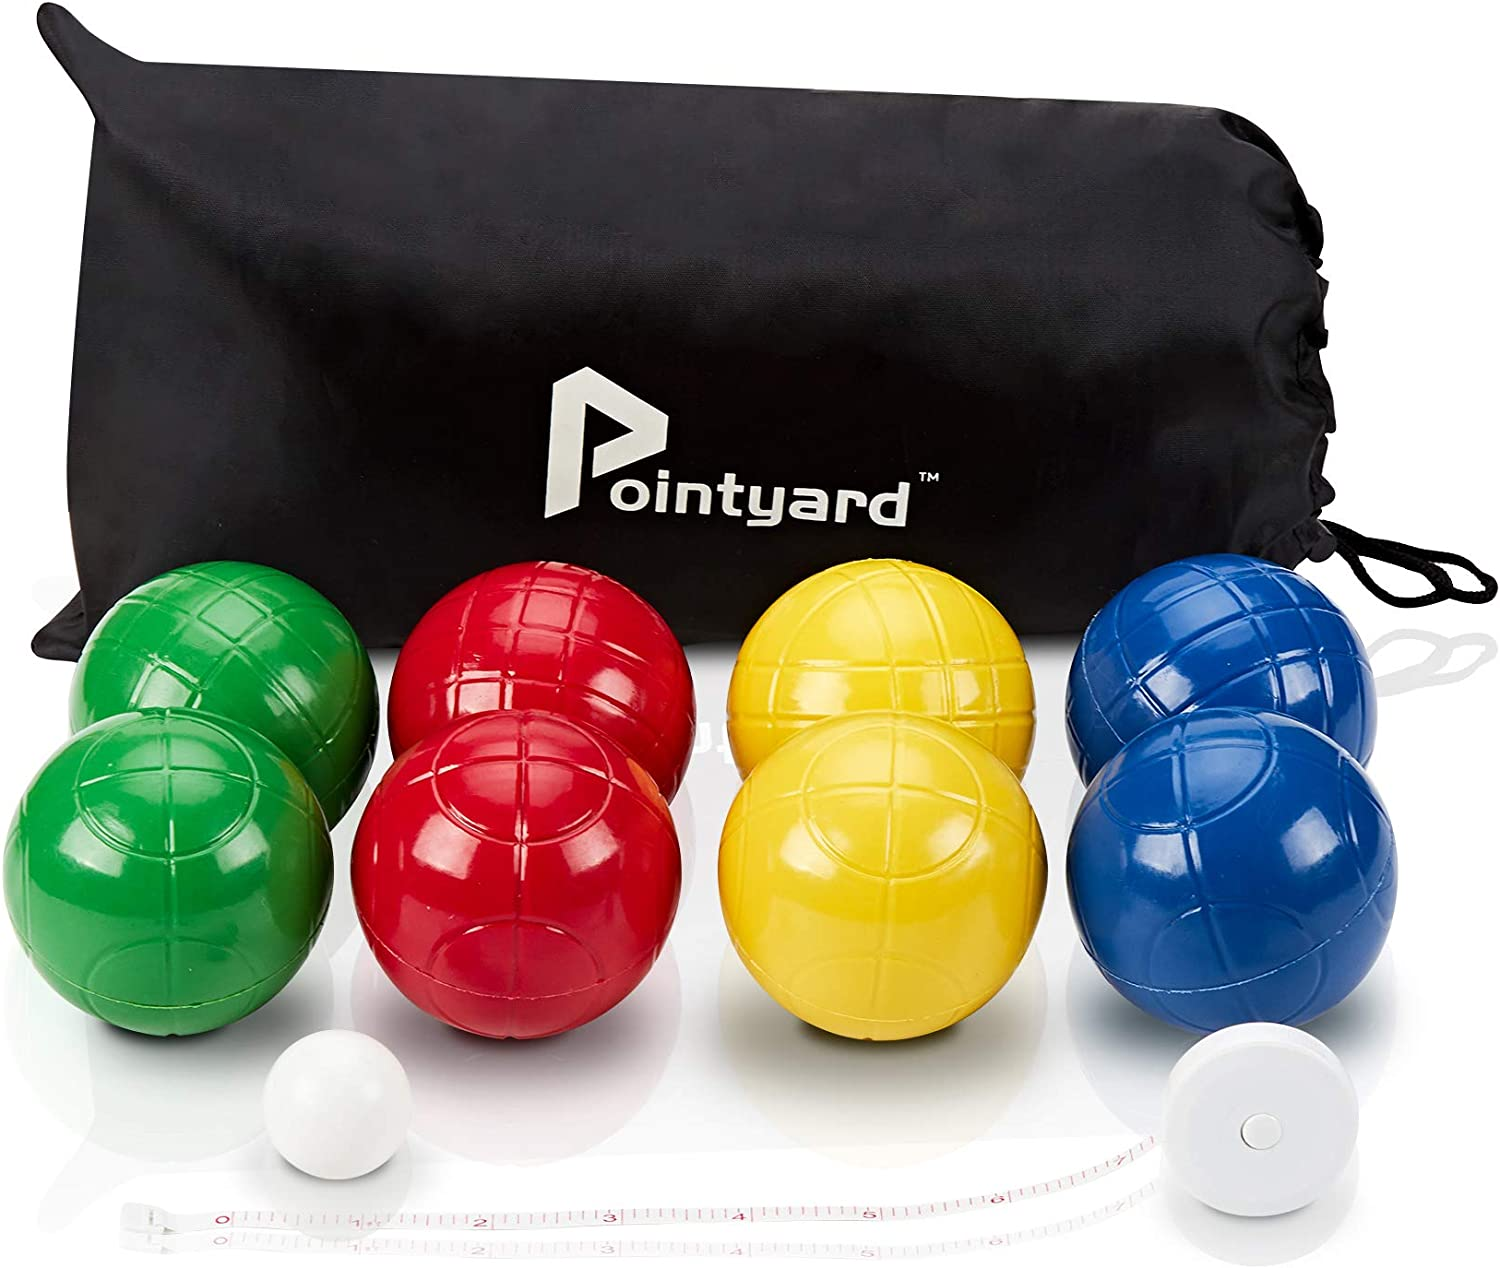 Pointyard 90mm Bocce Ball Set, Lighter Bocci Ball Sets with 8 PE